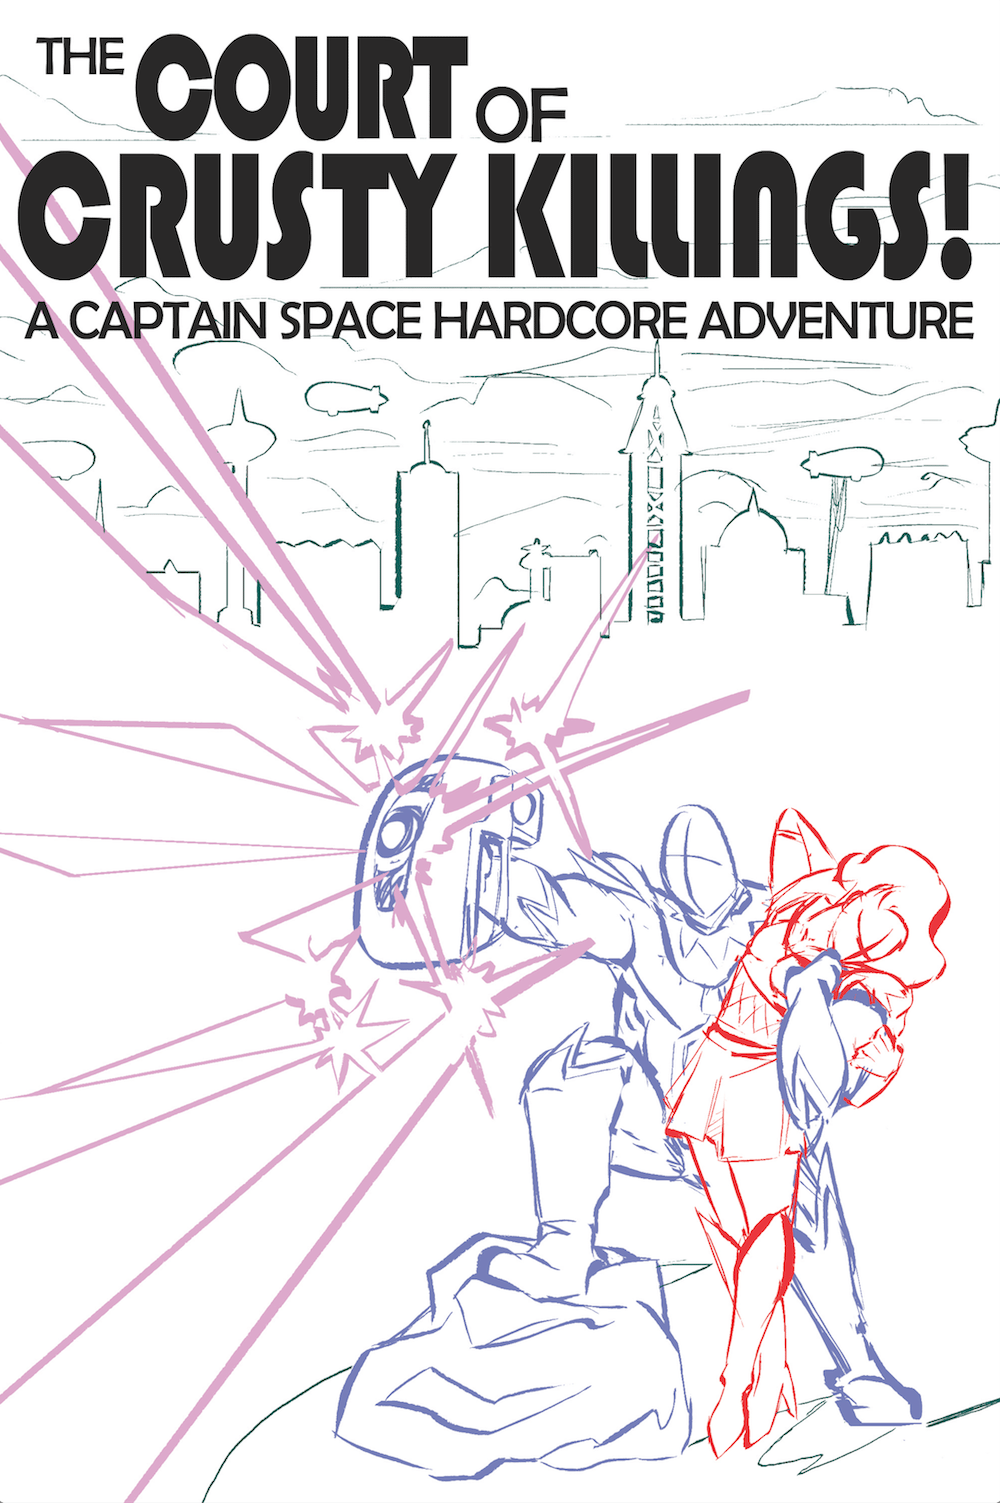 Sci Fi Book Cover Layout Draft by Omniopticon